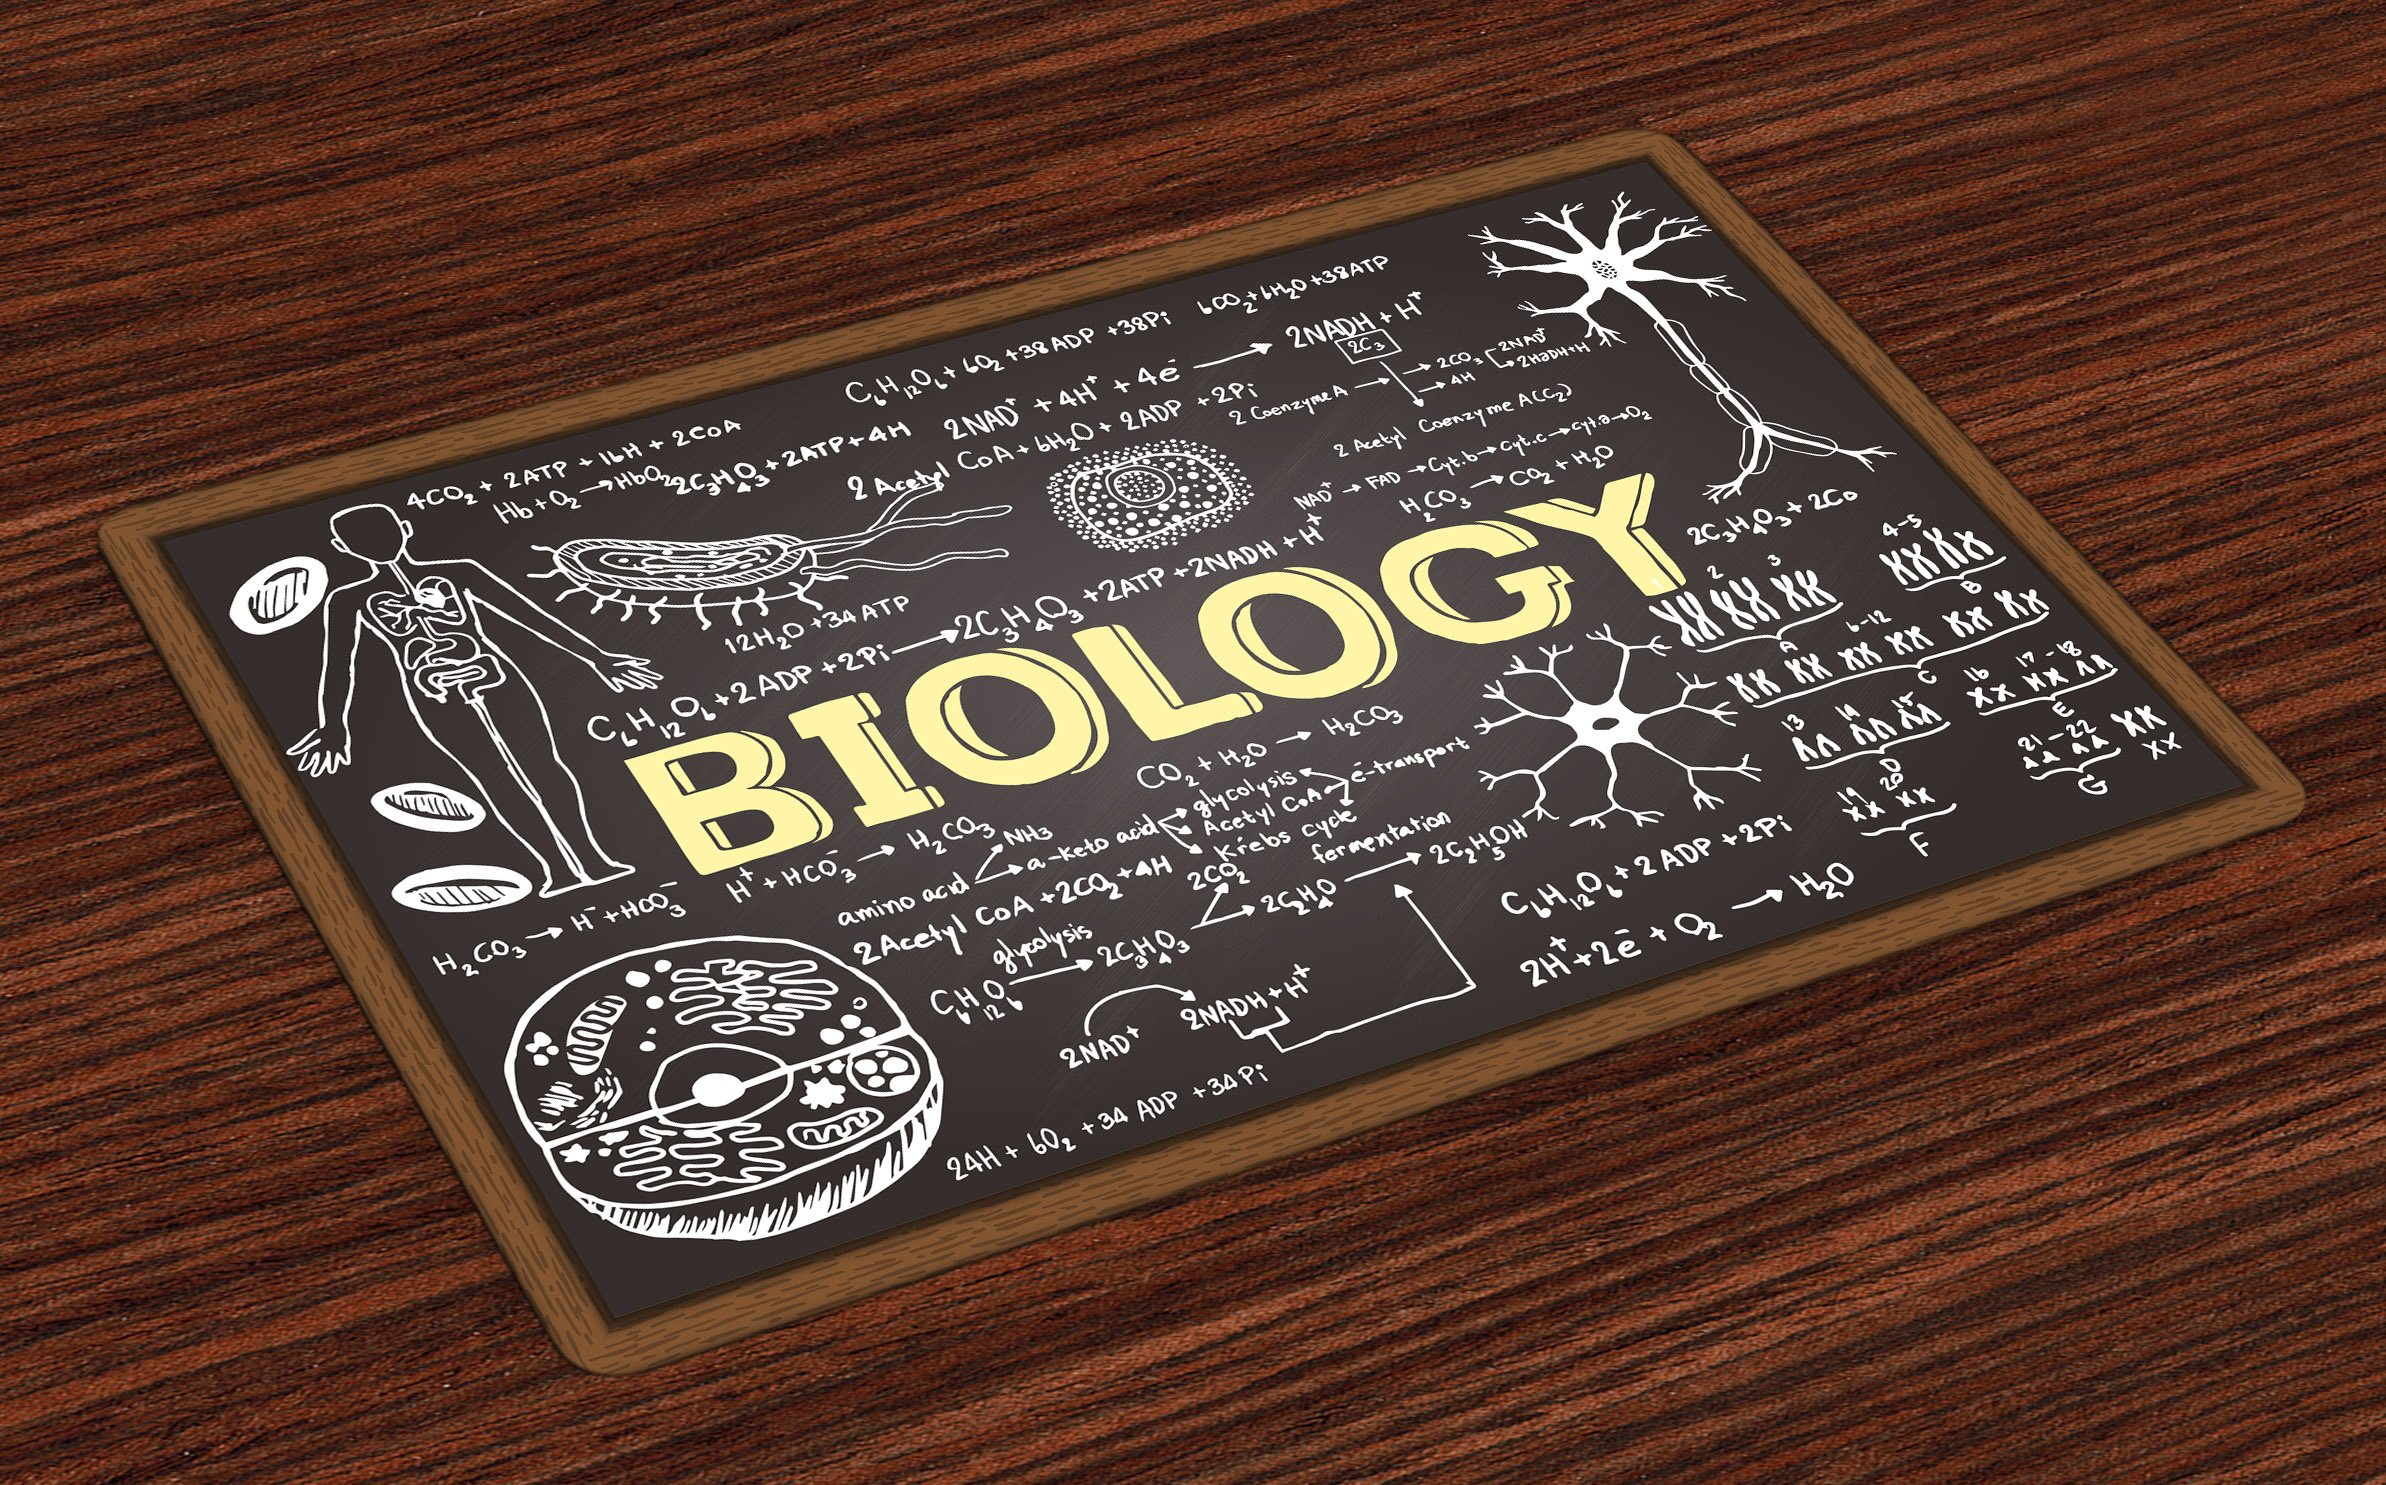 Ambesonne Educational Place Mats Set of 4, Black Chalkboard Biology Hand Written Symbols School Classroom, Washable Fabric Placemats for Dining Room Kitchen Table Decor, Black Brown Pale Yellow